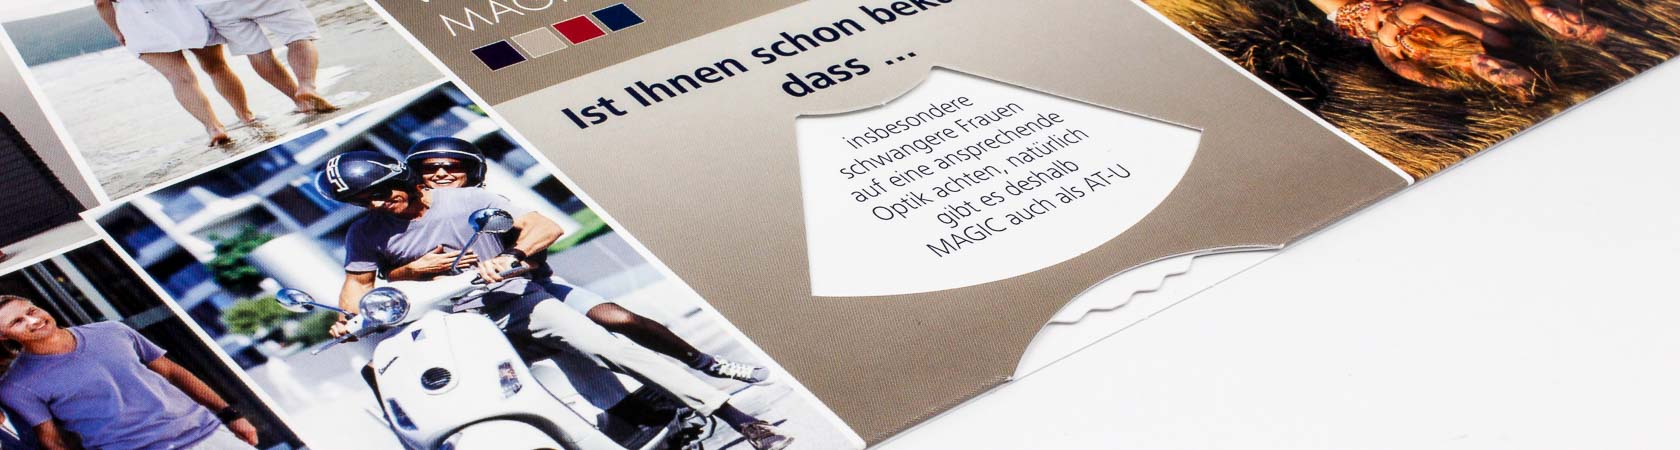 Drehscheibe in Direct-Mailing